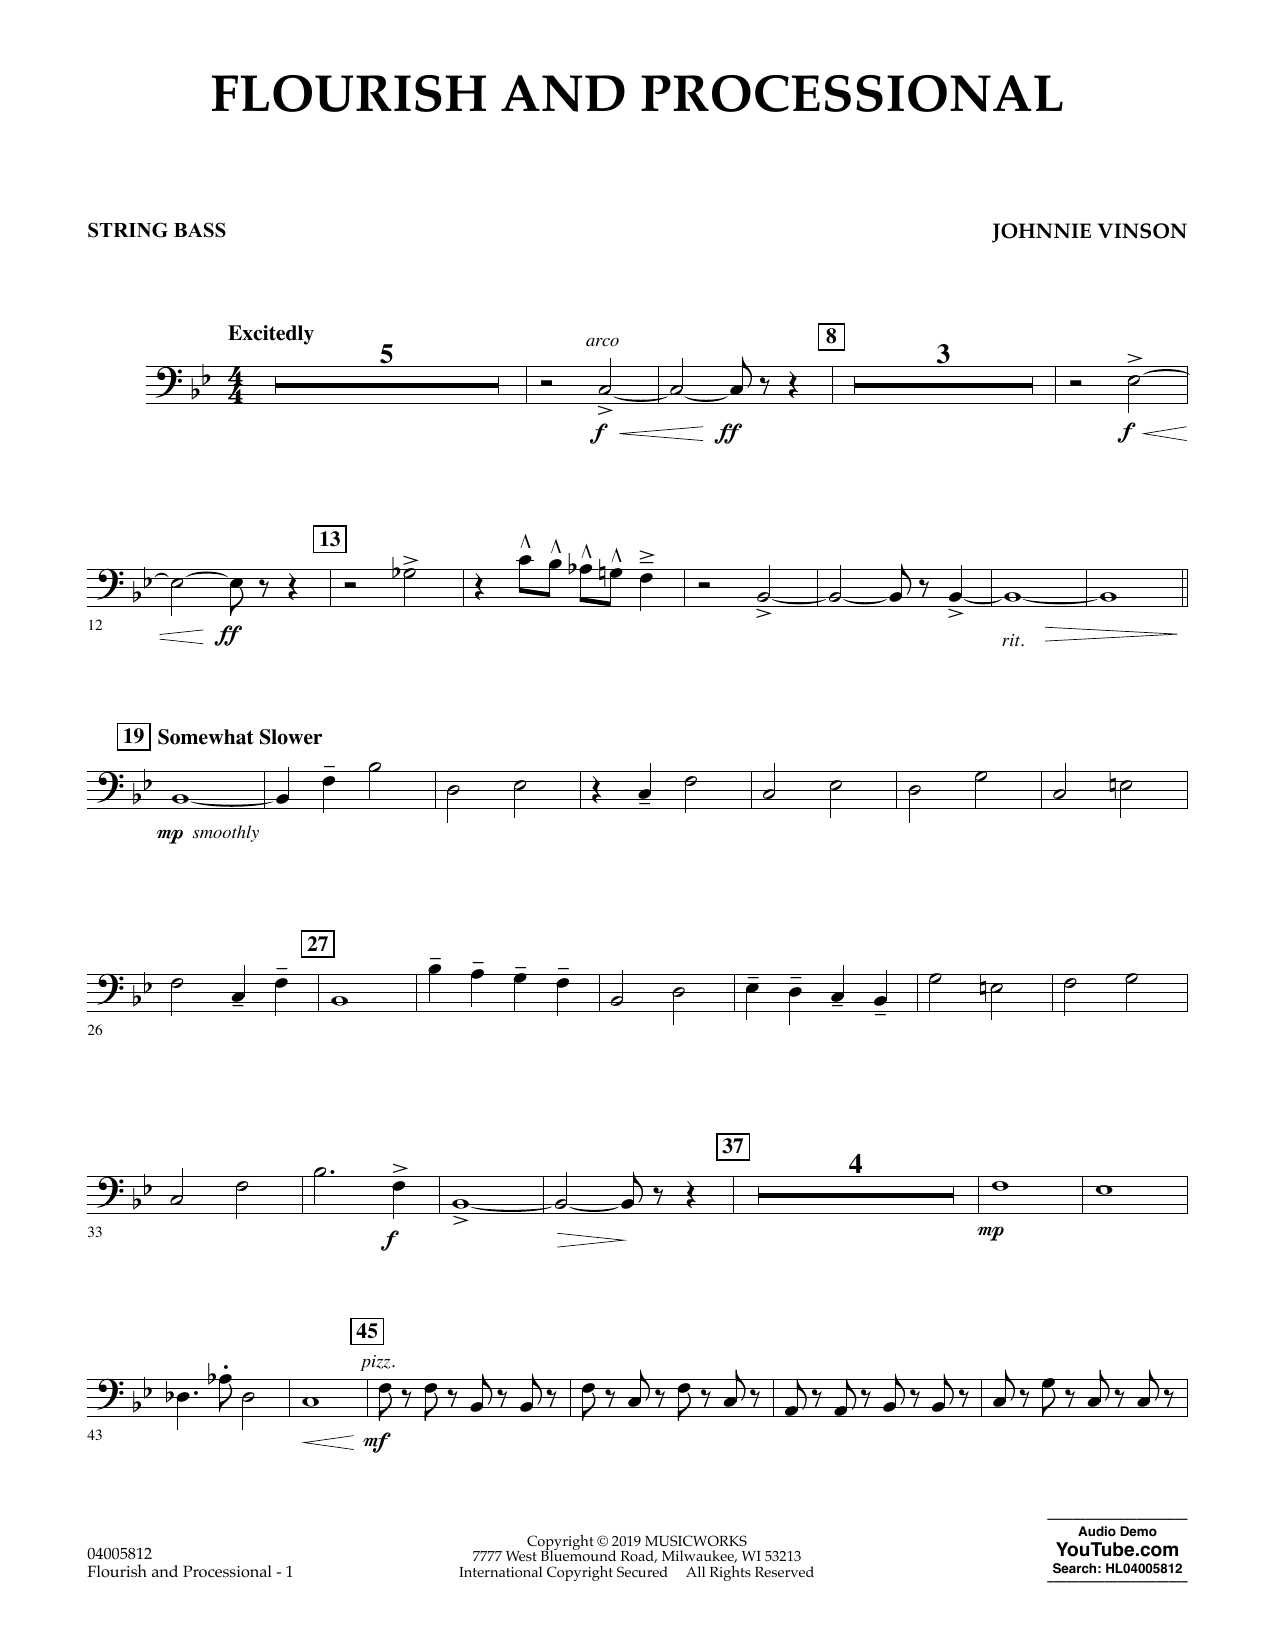 Johnnie Vinson Flourish and Processional - String Bass sheet music preview music notes and score for Concert Band including 2 page(s)